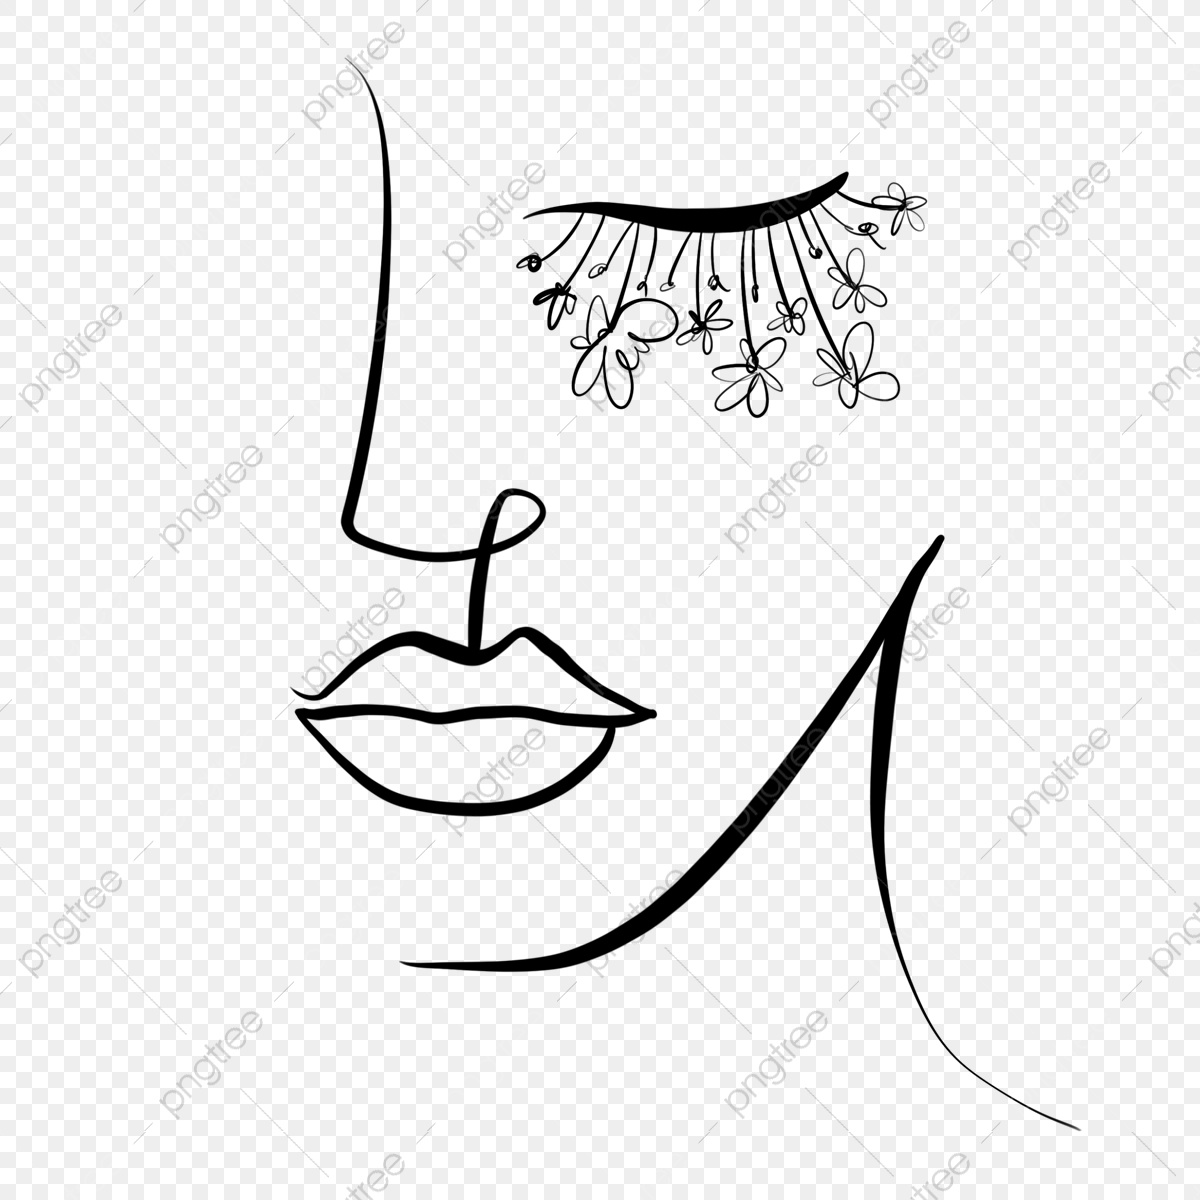 pngtree line draw flowers decorative eyelashes abstract woman png image